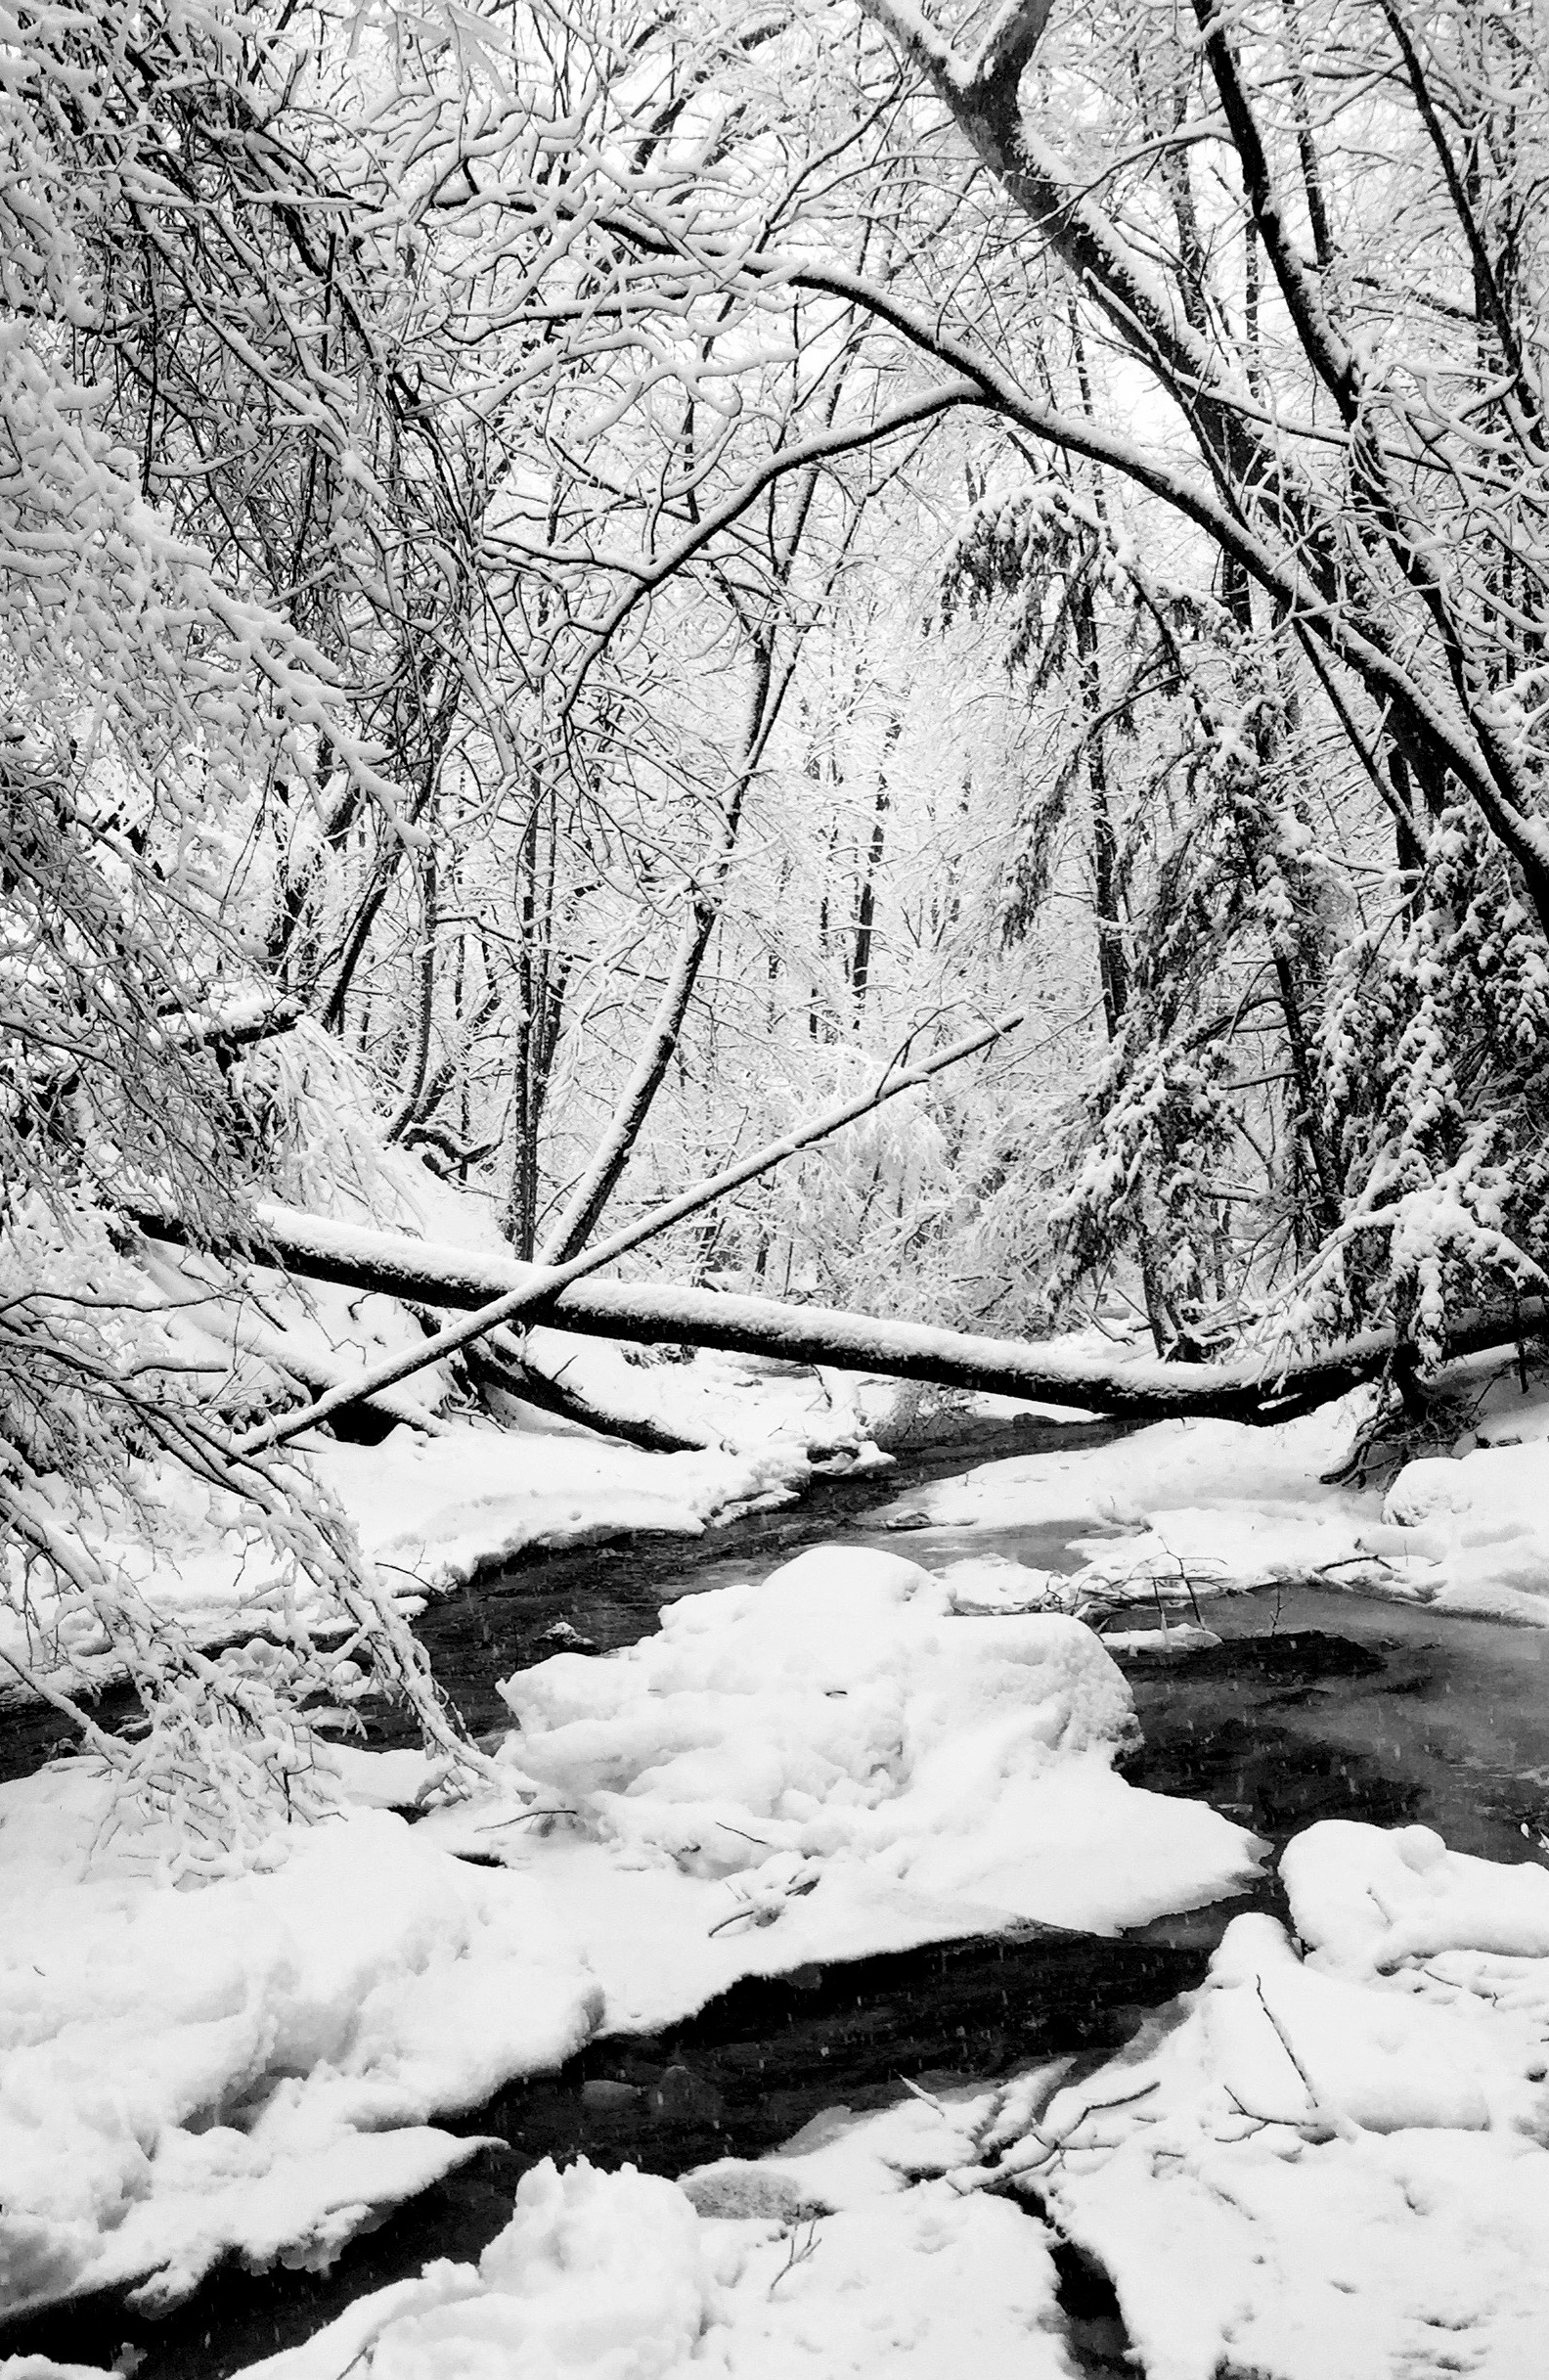 The brook is at its most magical—and most treacherous—in winter. Be wary.